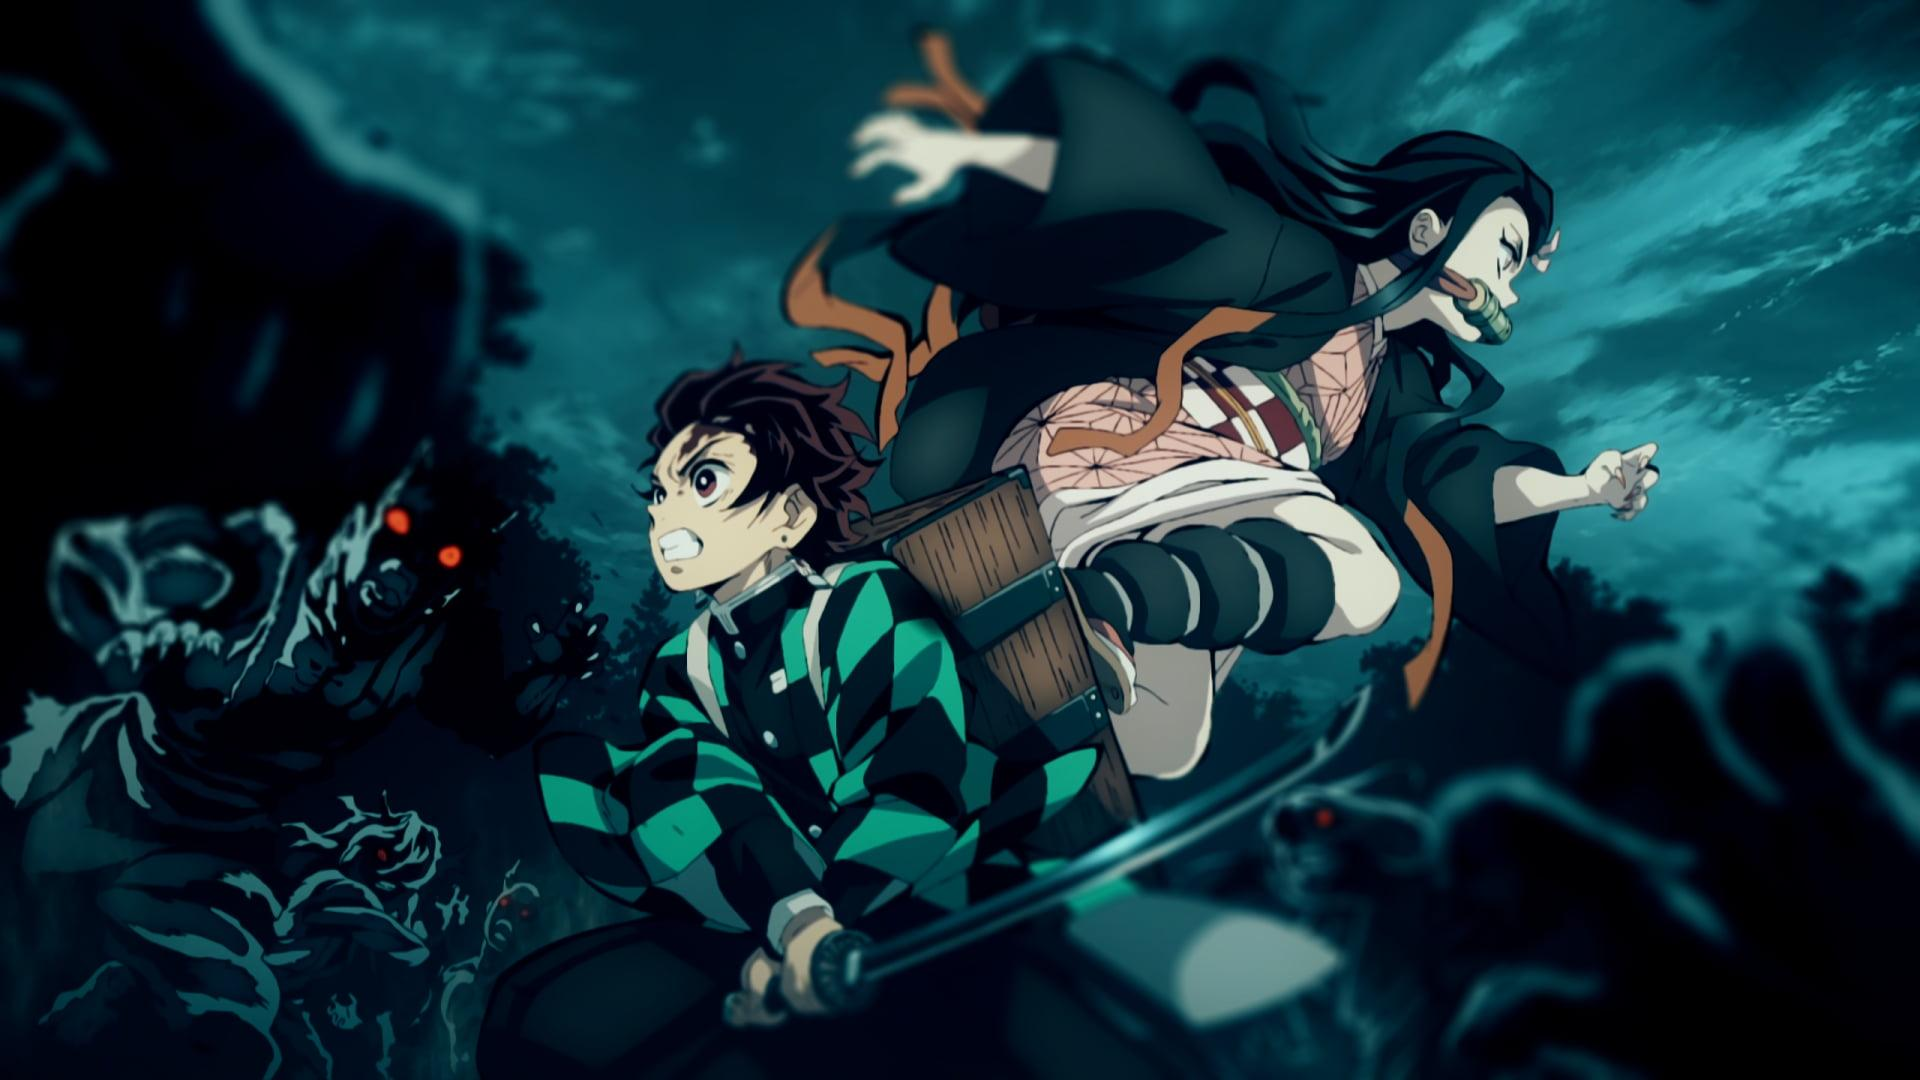 HD Kimetsu no Yaiba Wallpapers